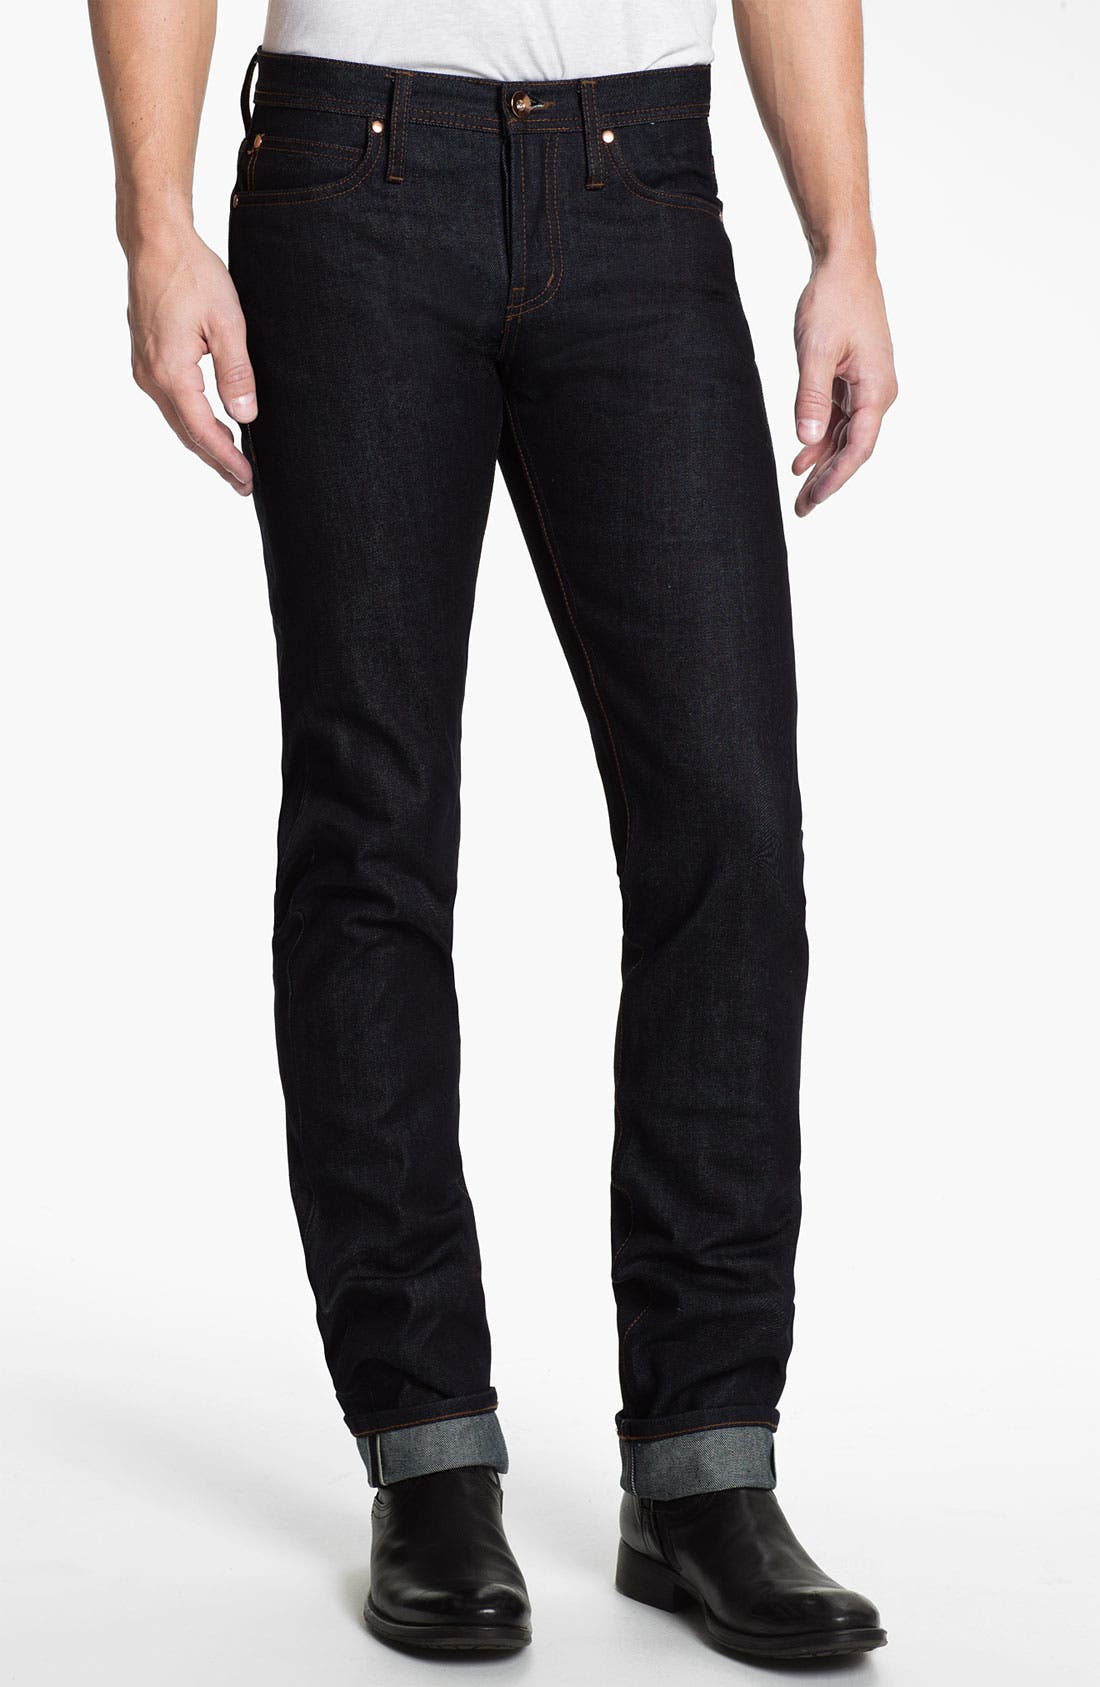 Alternate Image 1 Selected - The Unbranded Brand UB101 Skinny Fit Raw Selvedge Jeans (Indigo)